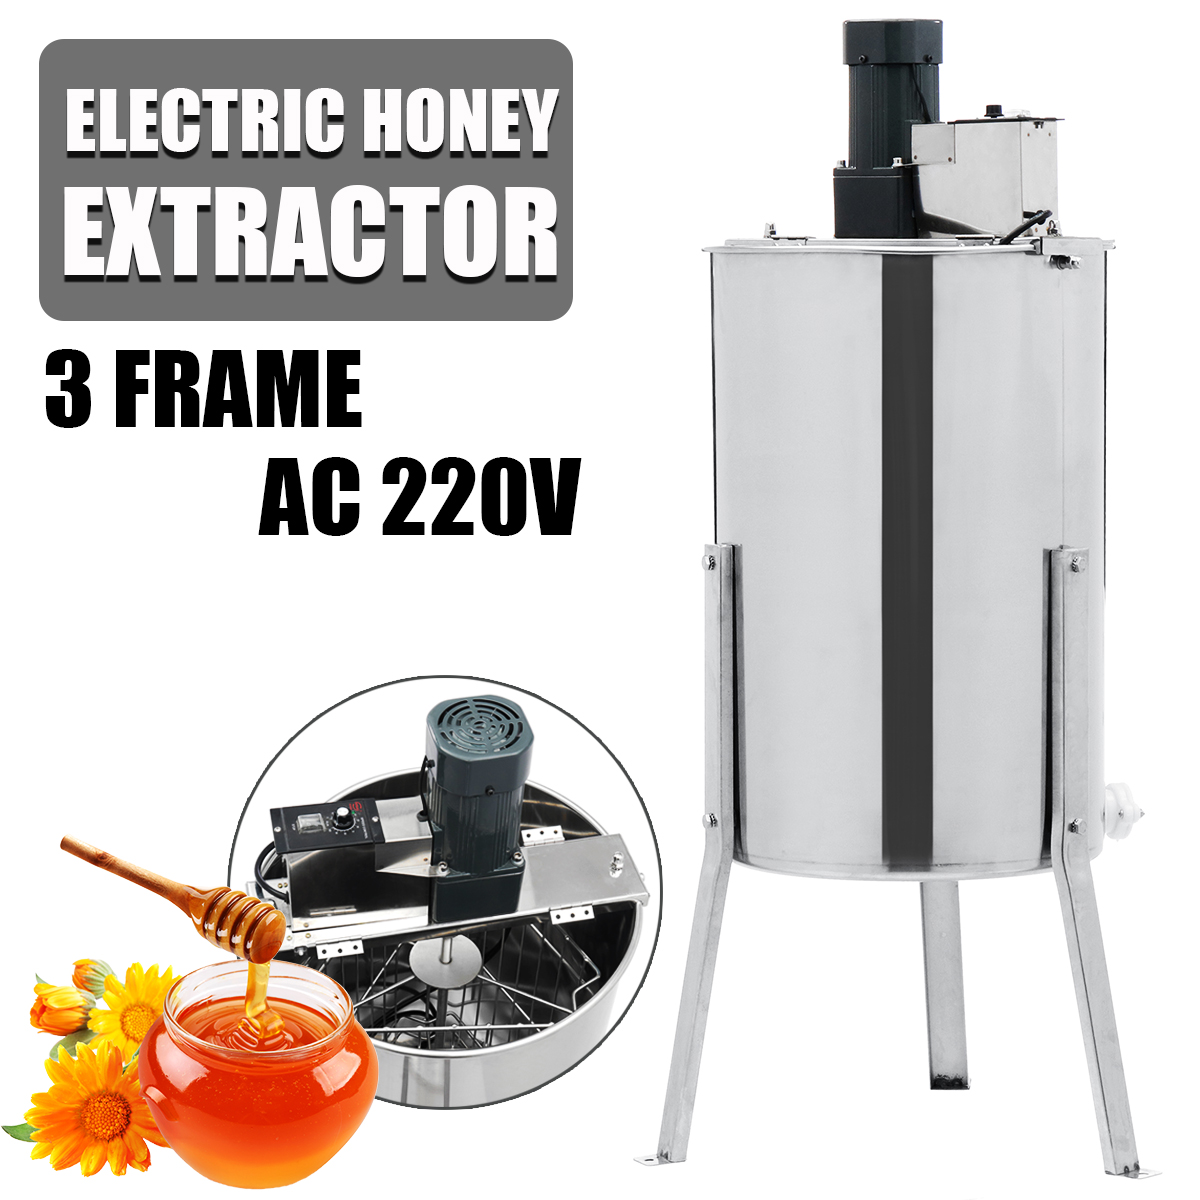 3 Frame Electric Honey Extractor Stainless Steel Beekeeping Machine Tool Box Honey Extractor Supplies Beekeeping Equipment3 Frame Electric Honey Extractor Stainless Steel Beekeeping Machine Tool Box Honey Extractor Supplies Beekeeping Equipment